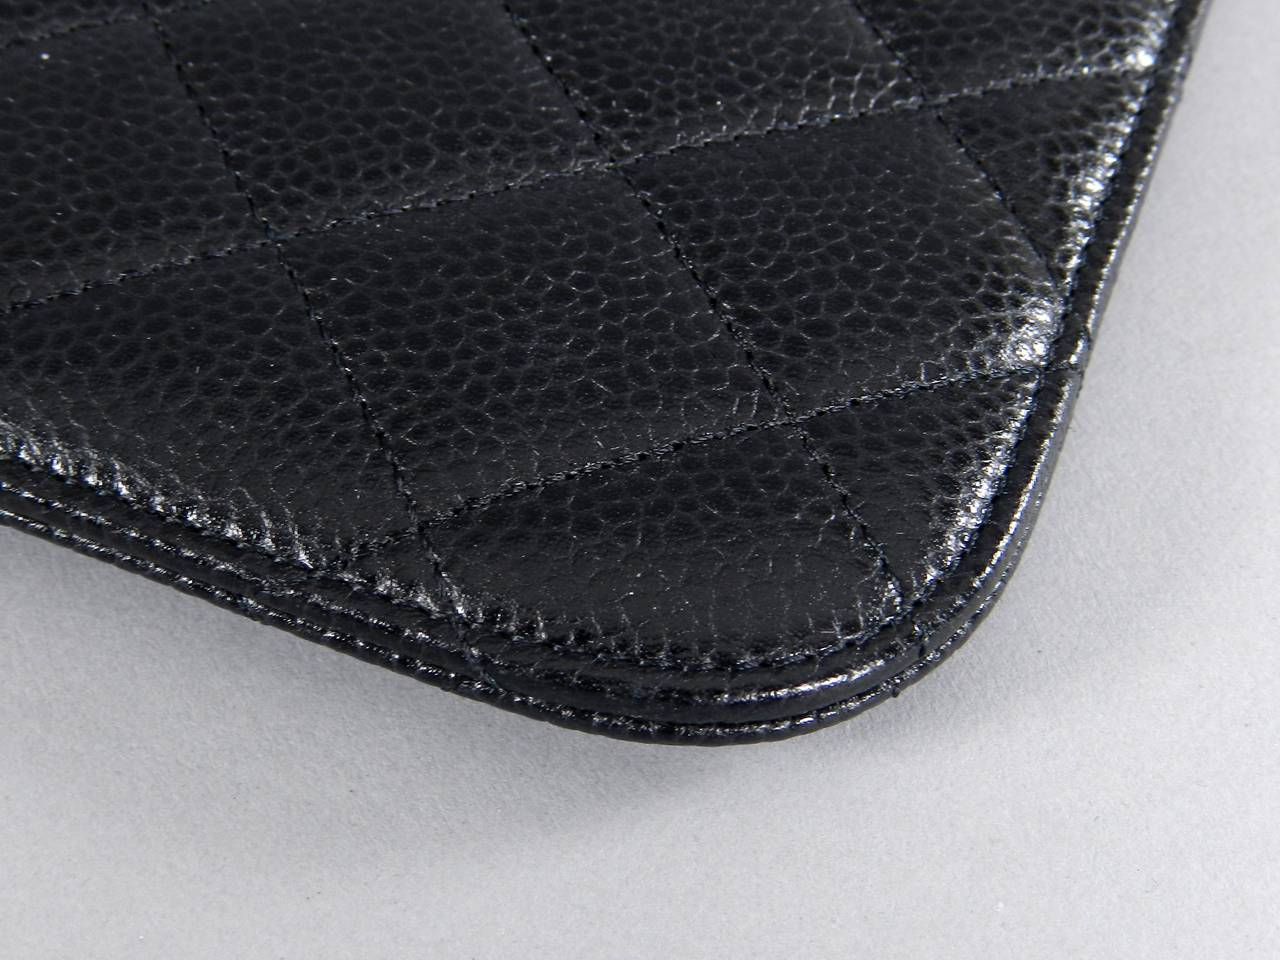 Chanel Black Caviar Ipad Case - Silvertone Hardware For Sale 2